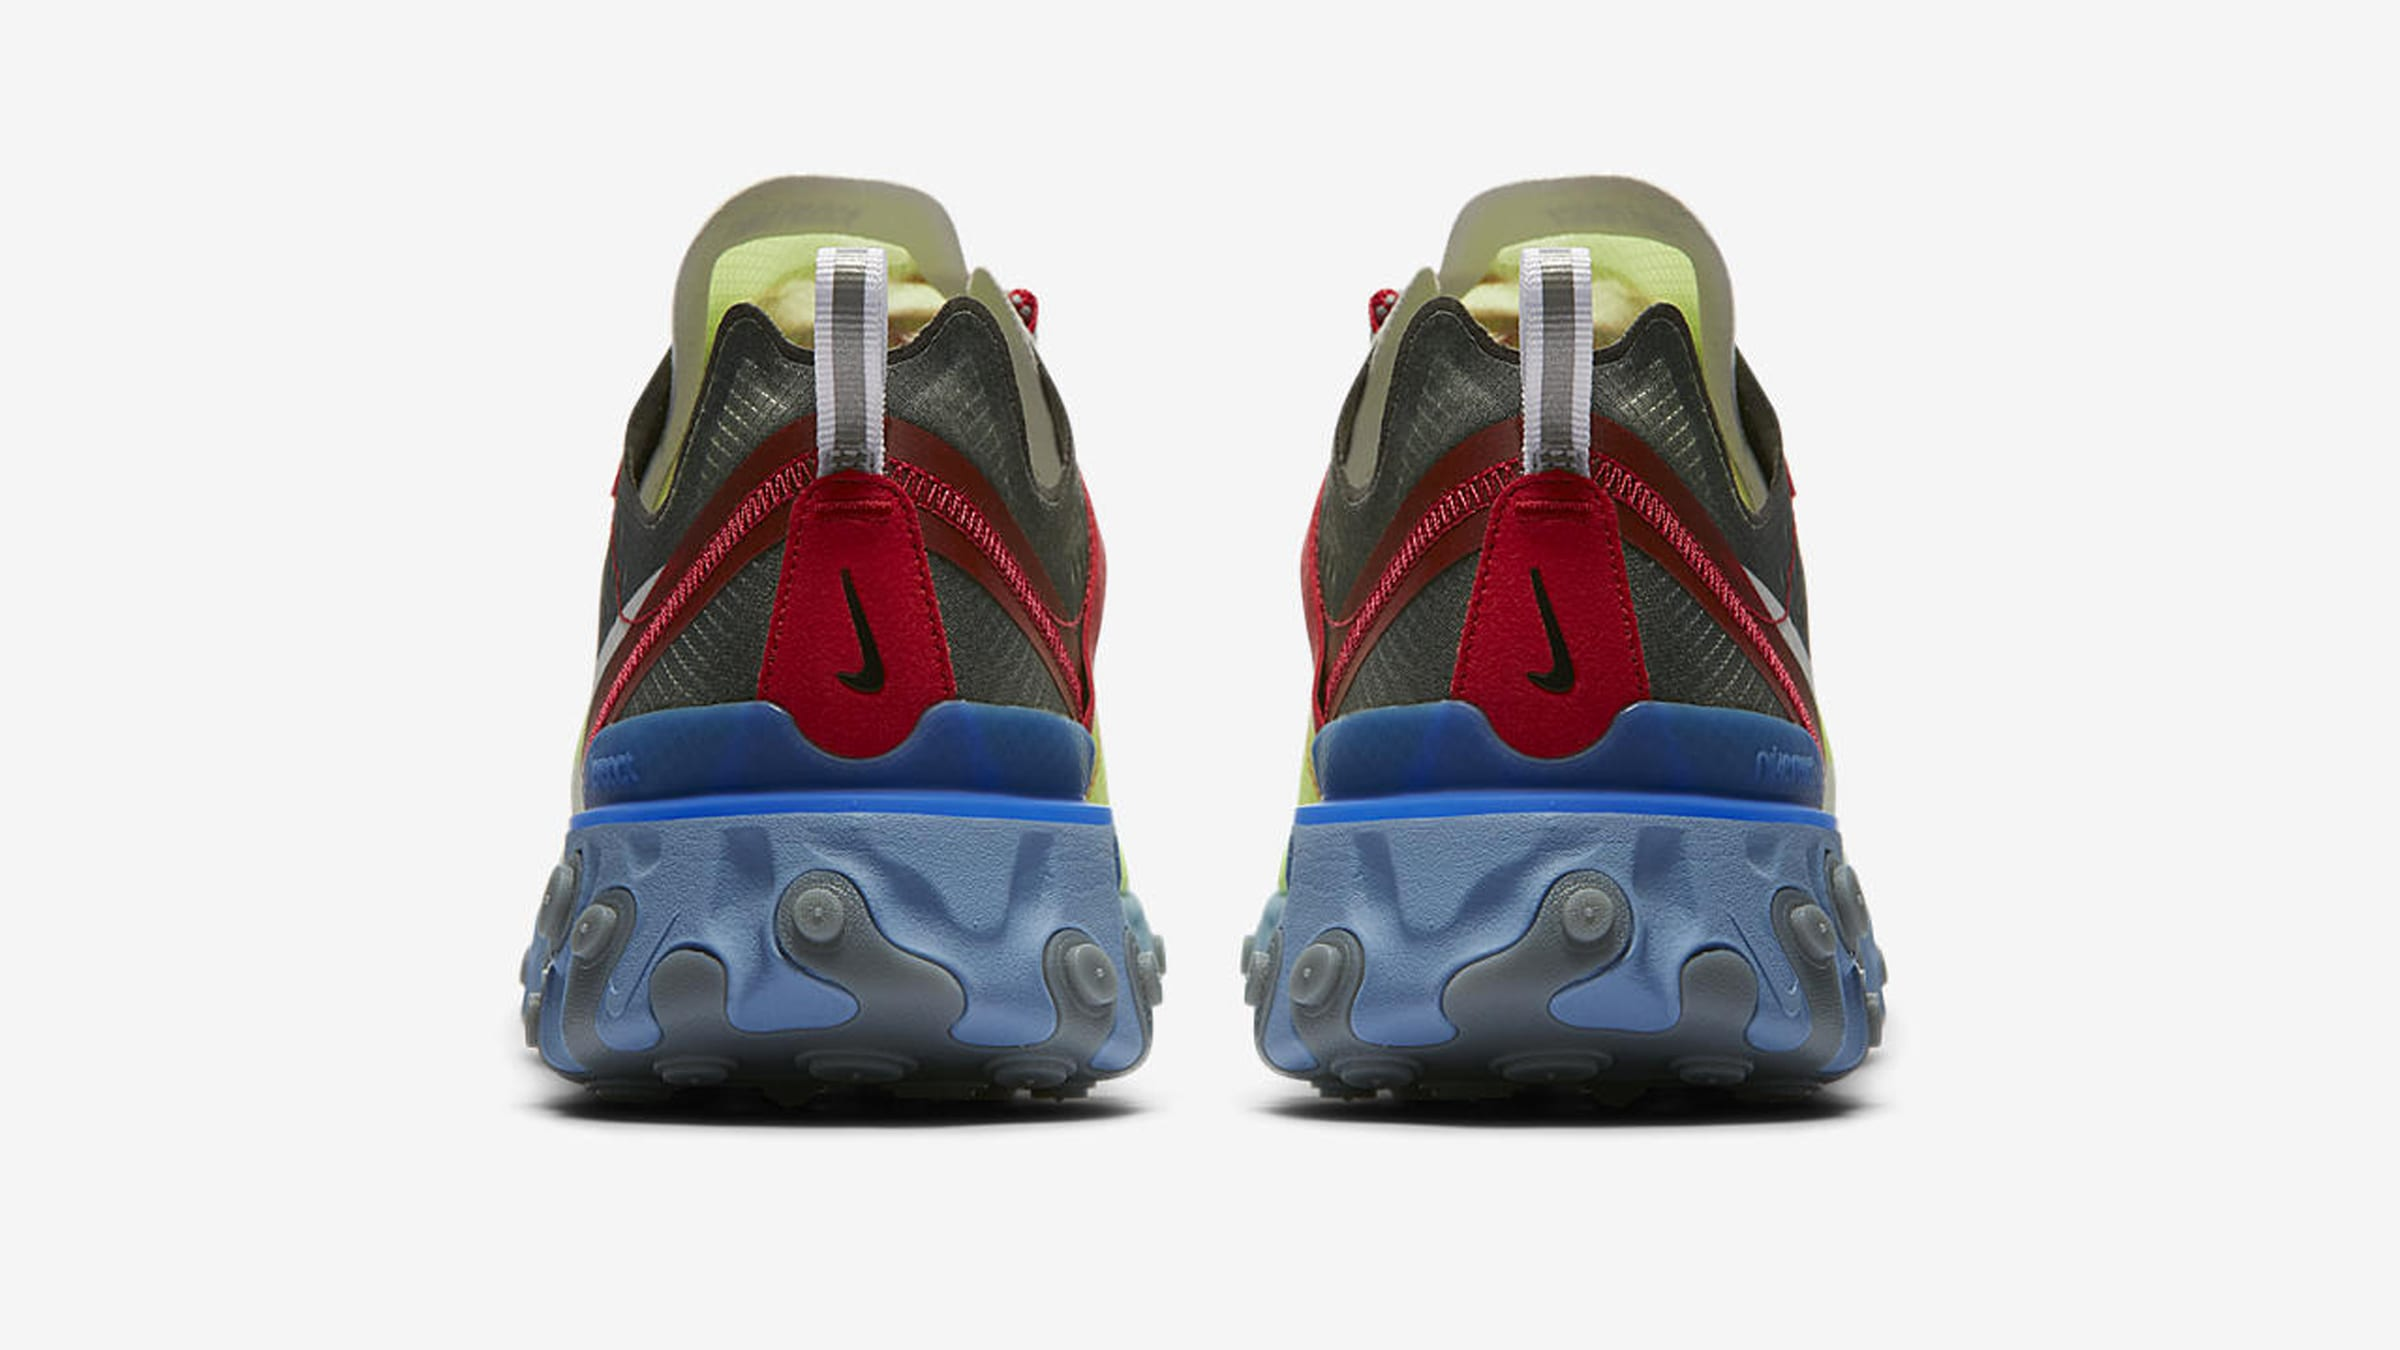 """086281c26860 Translucent TPE Uppers  """"UNDERCOVER Jun Takahashi""""  React Foam Cushioning   Rubber Outsole  Style Code  BQ2718-700"""